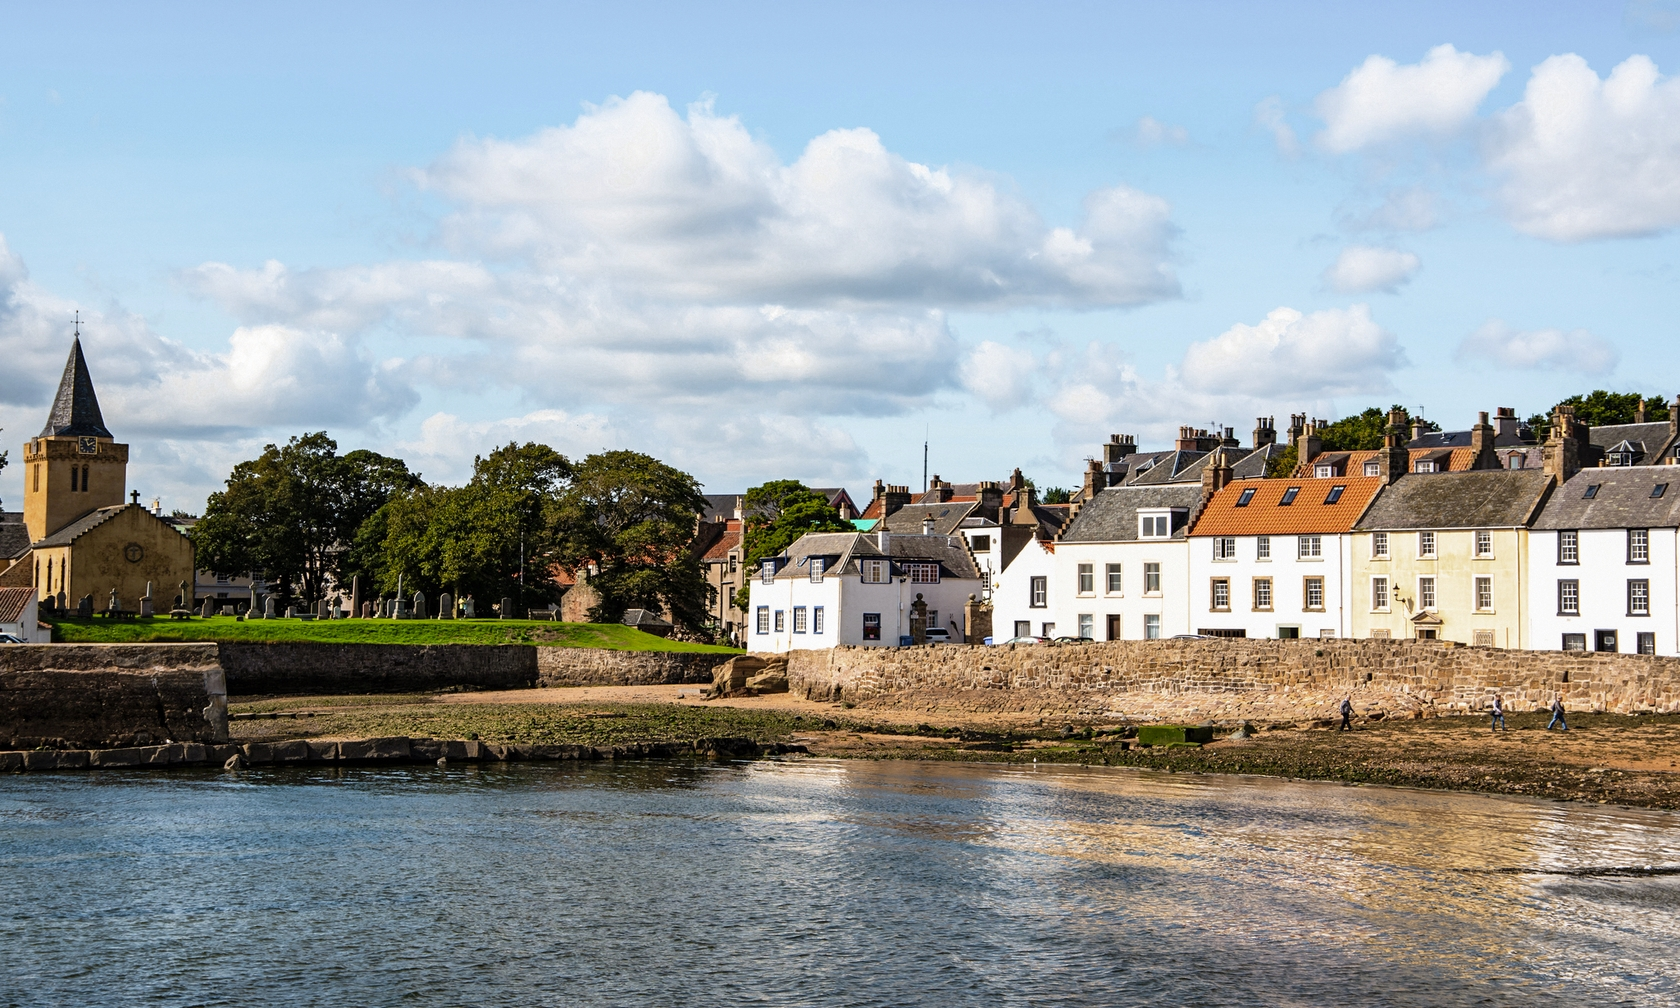 Holiday rental houses in Anstruther